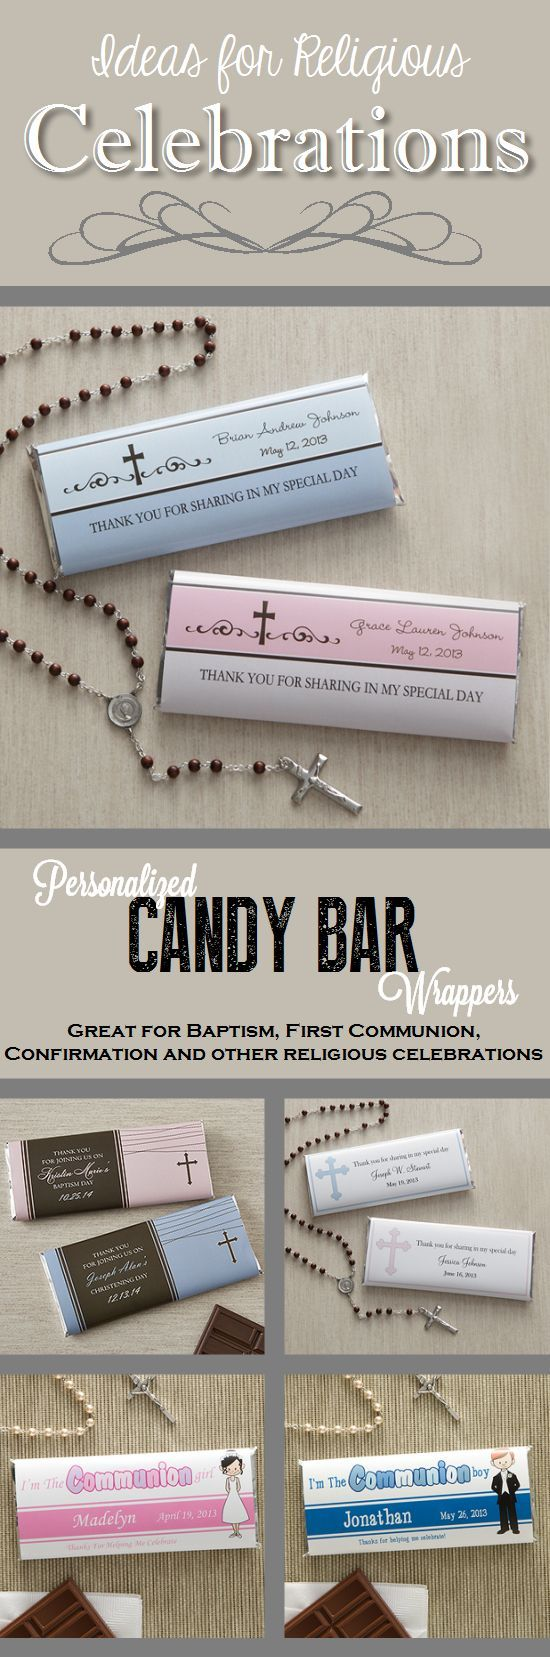 These personalized candy bar wrappers are great for baptism, first communion, confirmation and more religious celebrations.